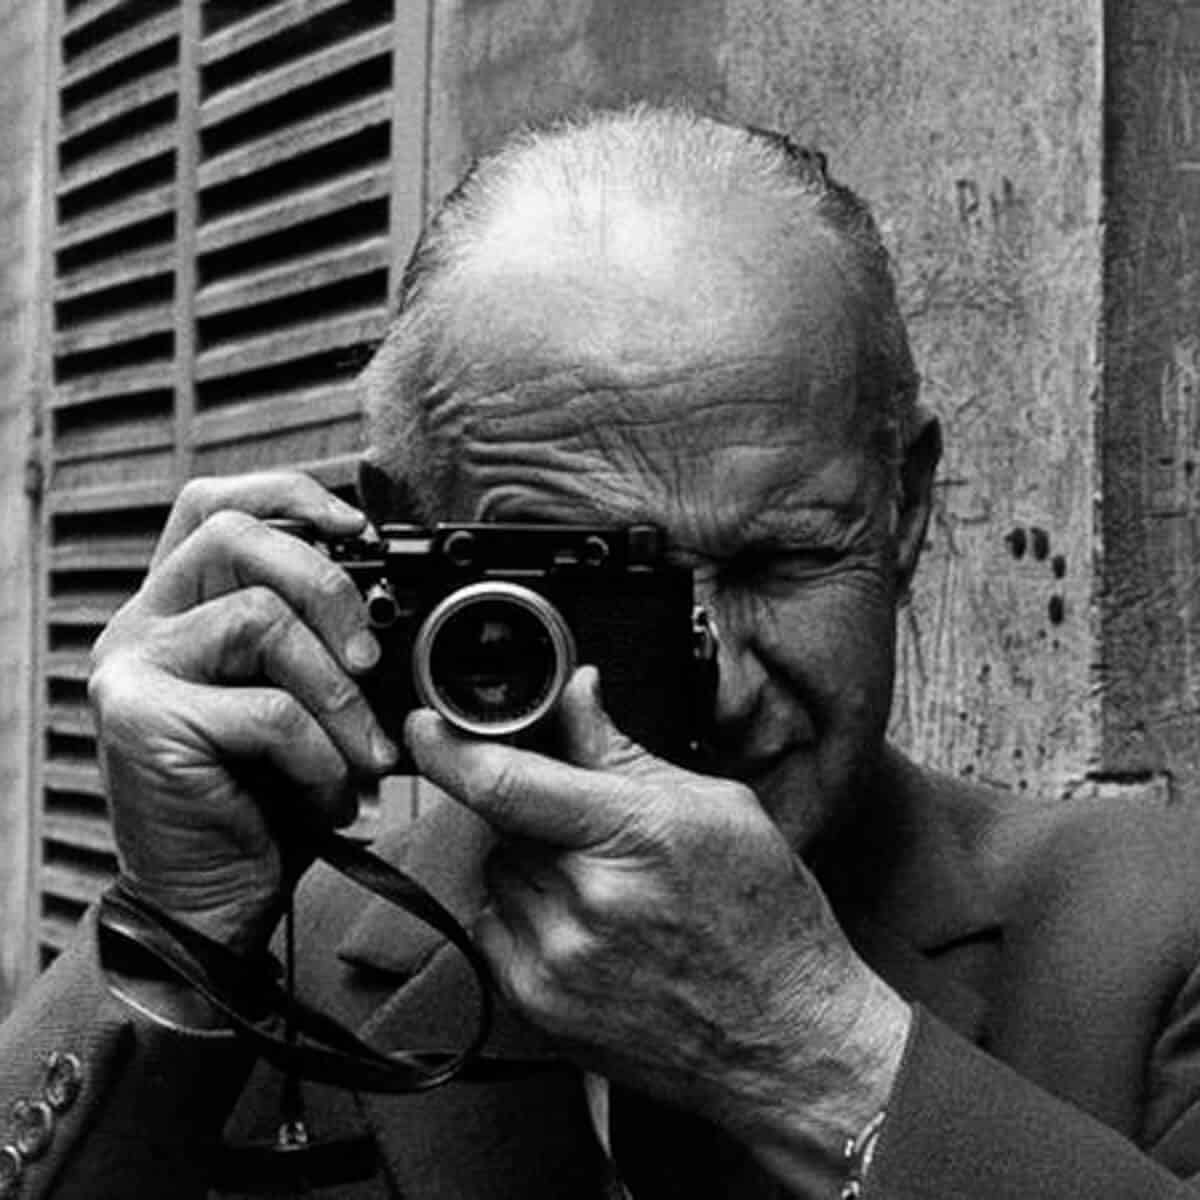 Grayscale of a man taking a photo.